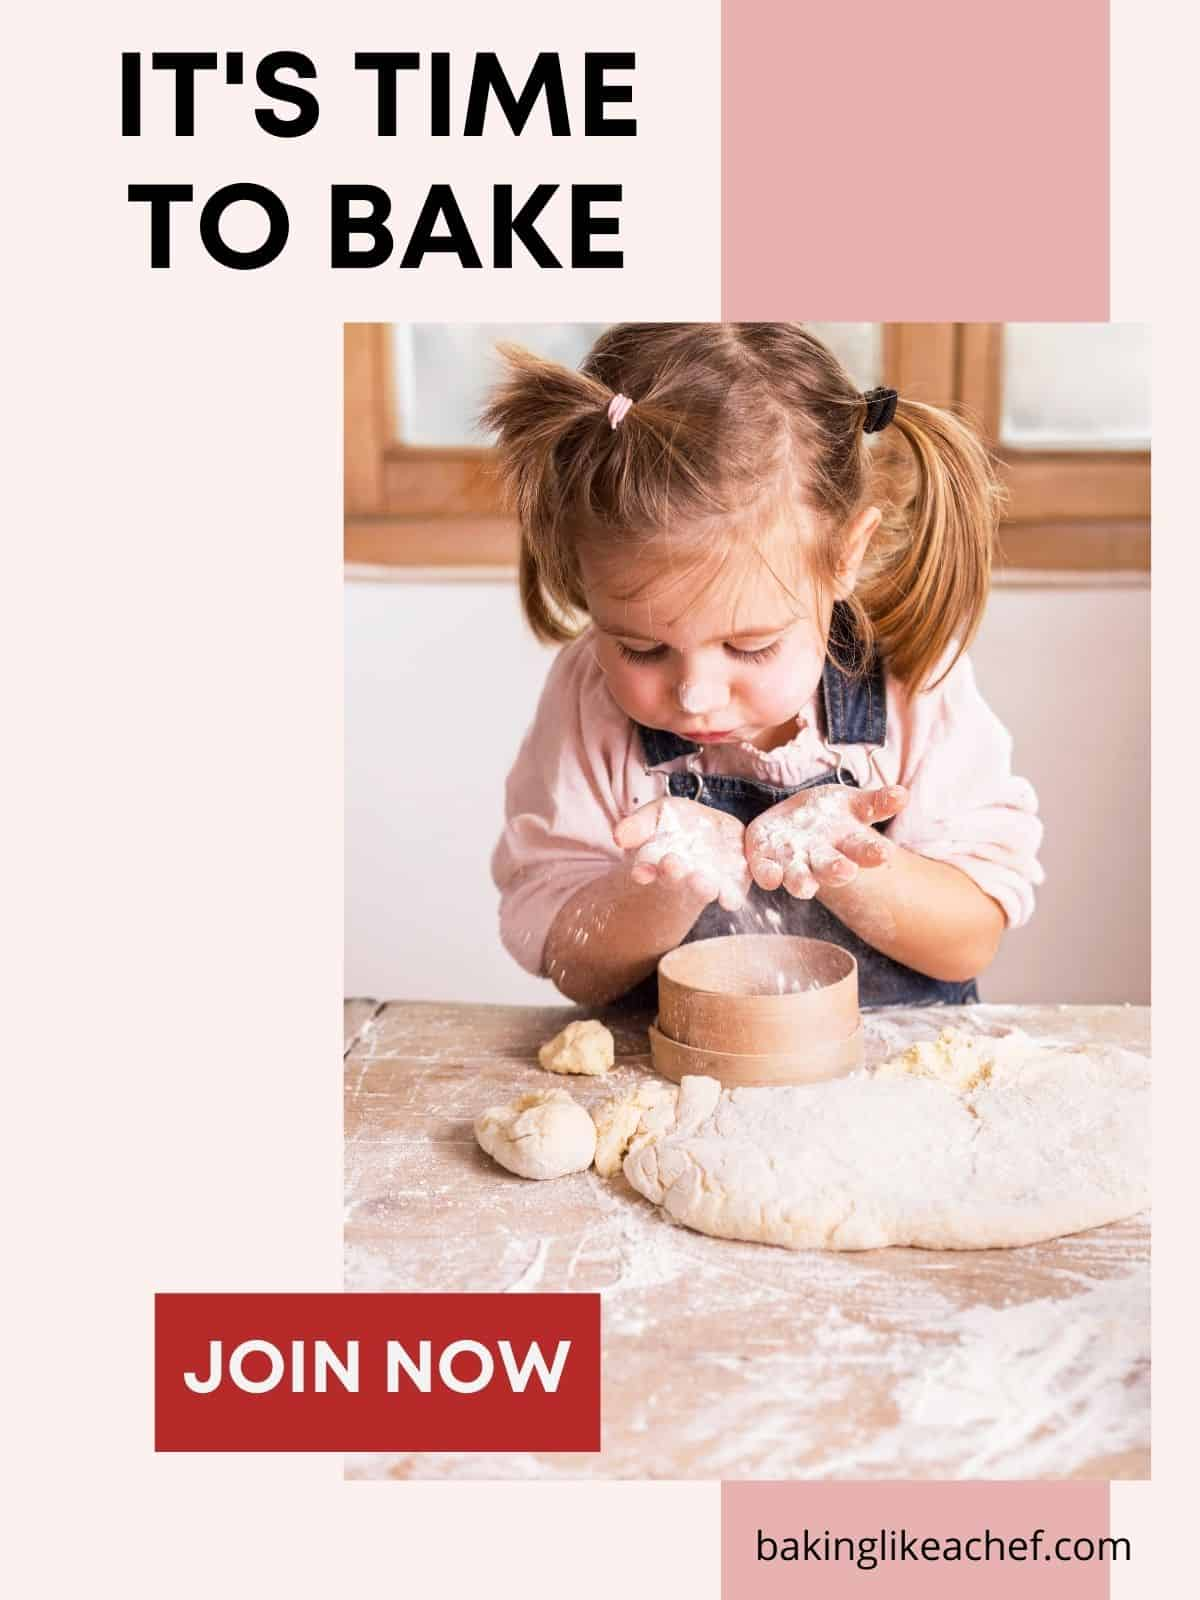 A girl dealing with the dough on a wooden board